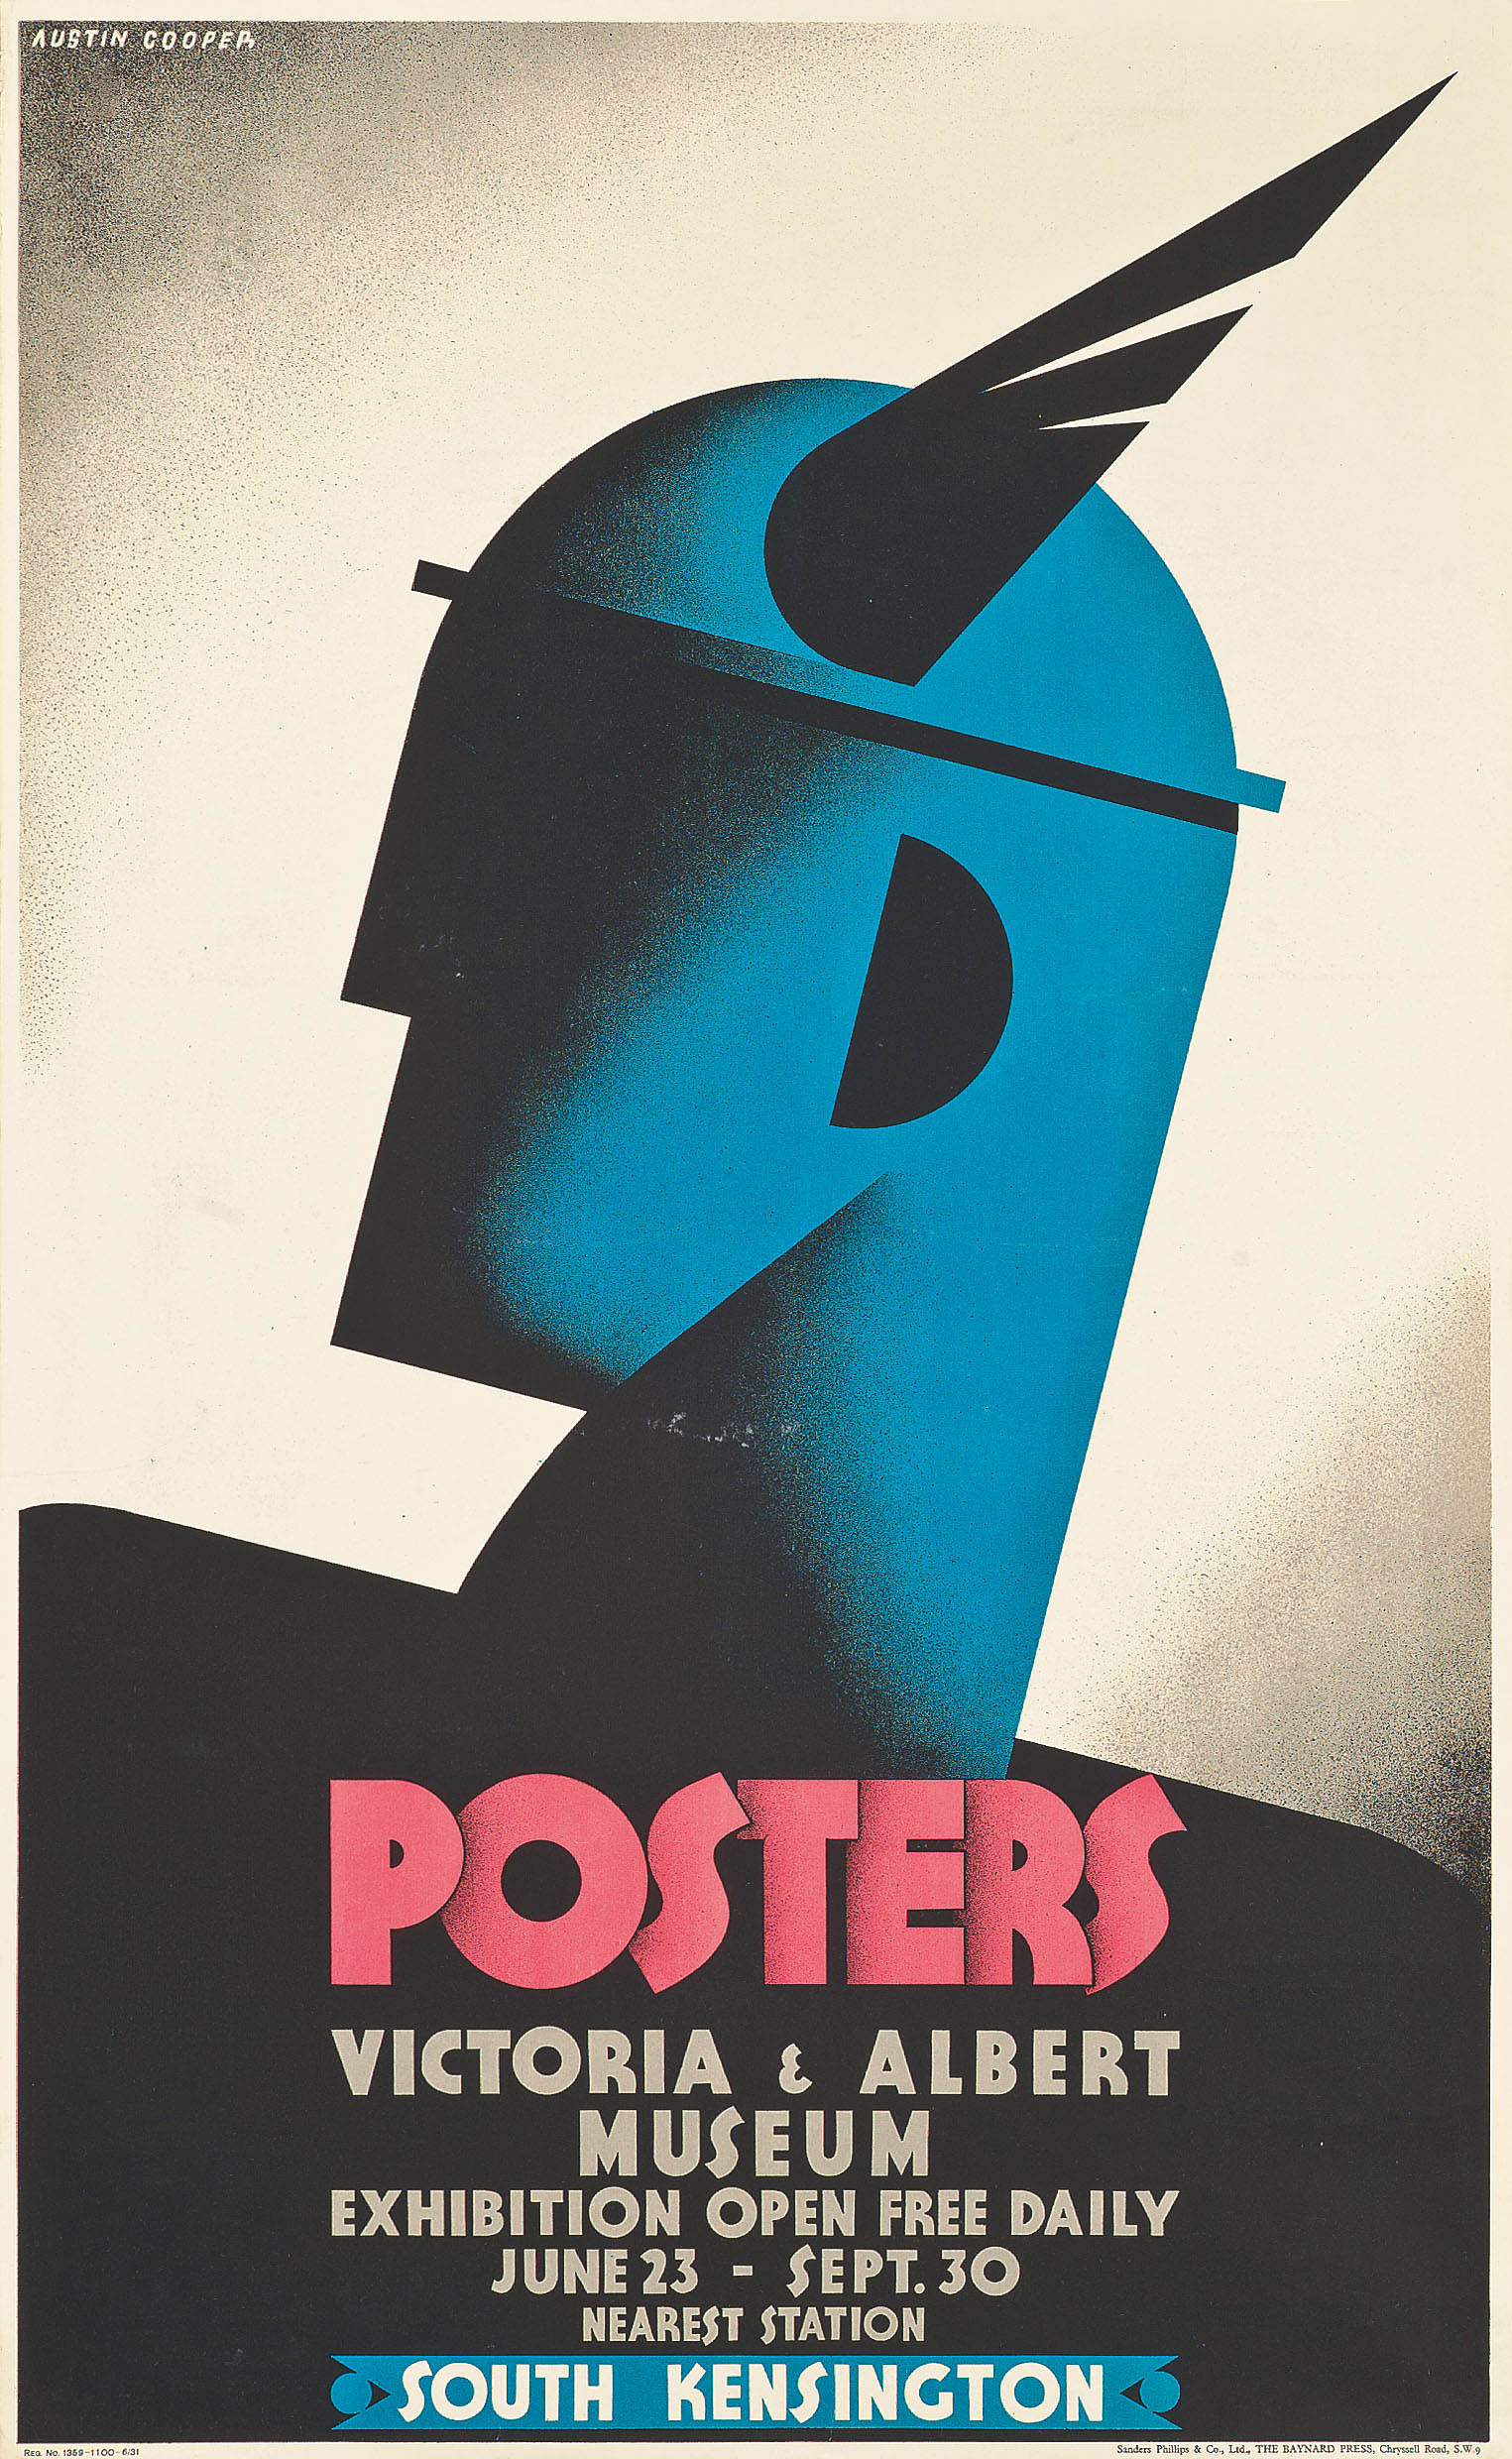 POSTERS AT THE VICTORIA & ALBERT MUSEUM